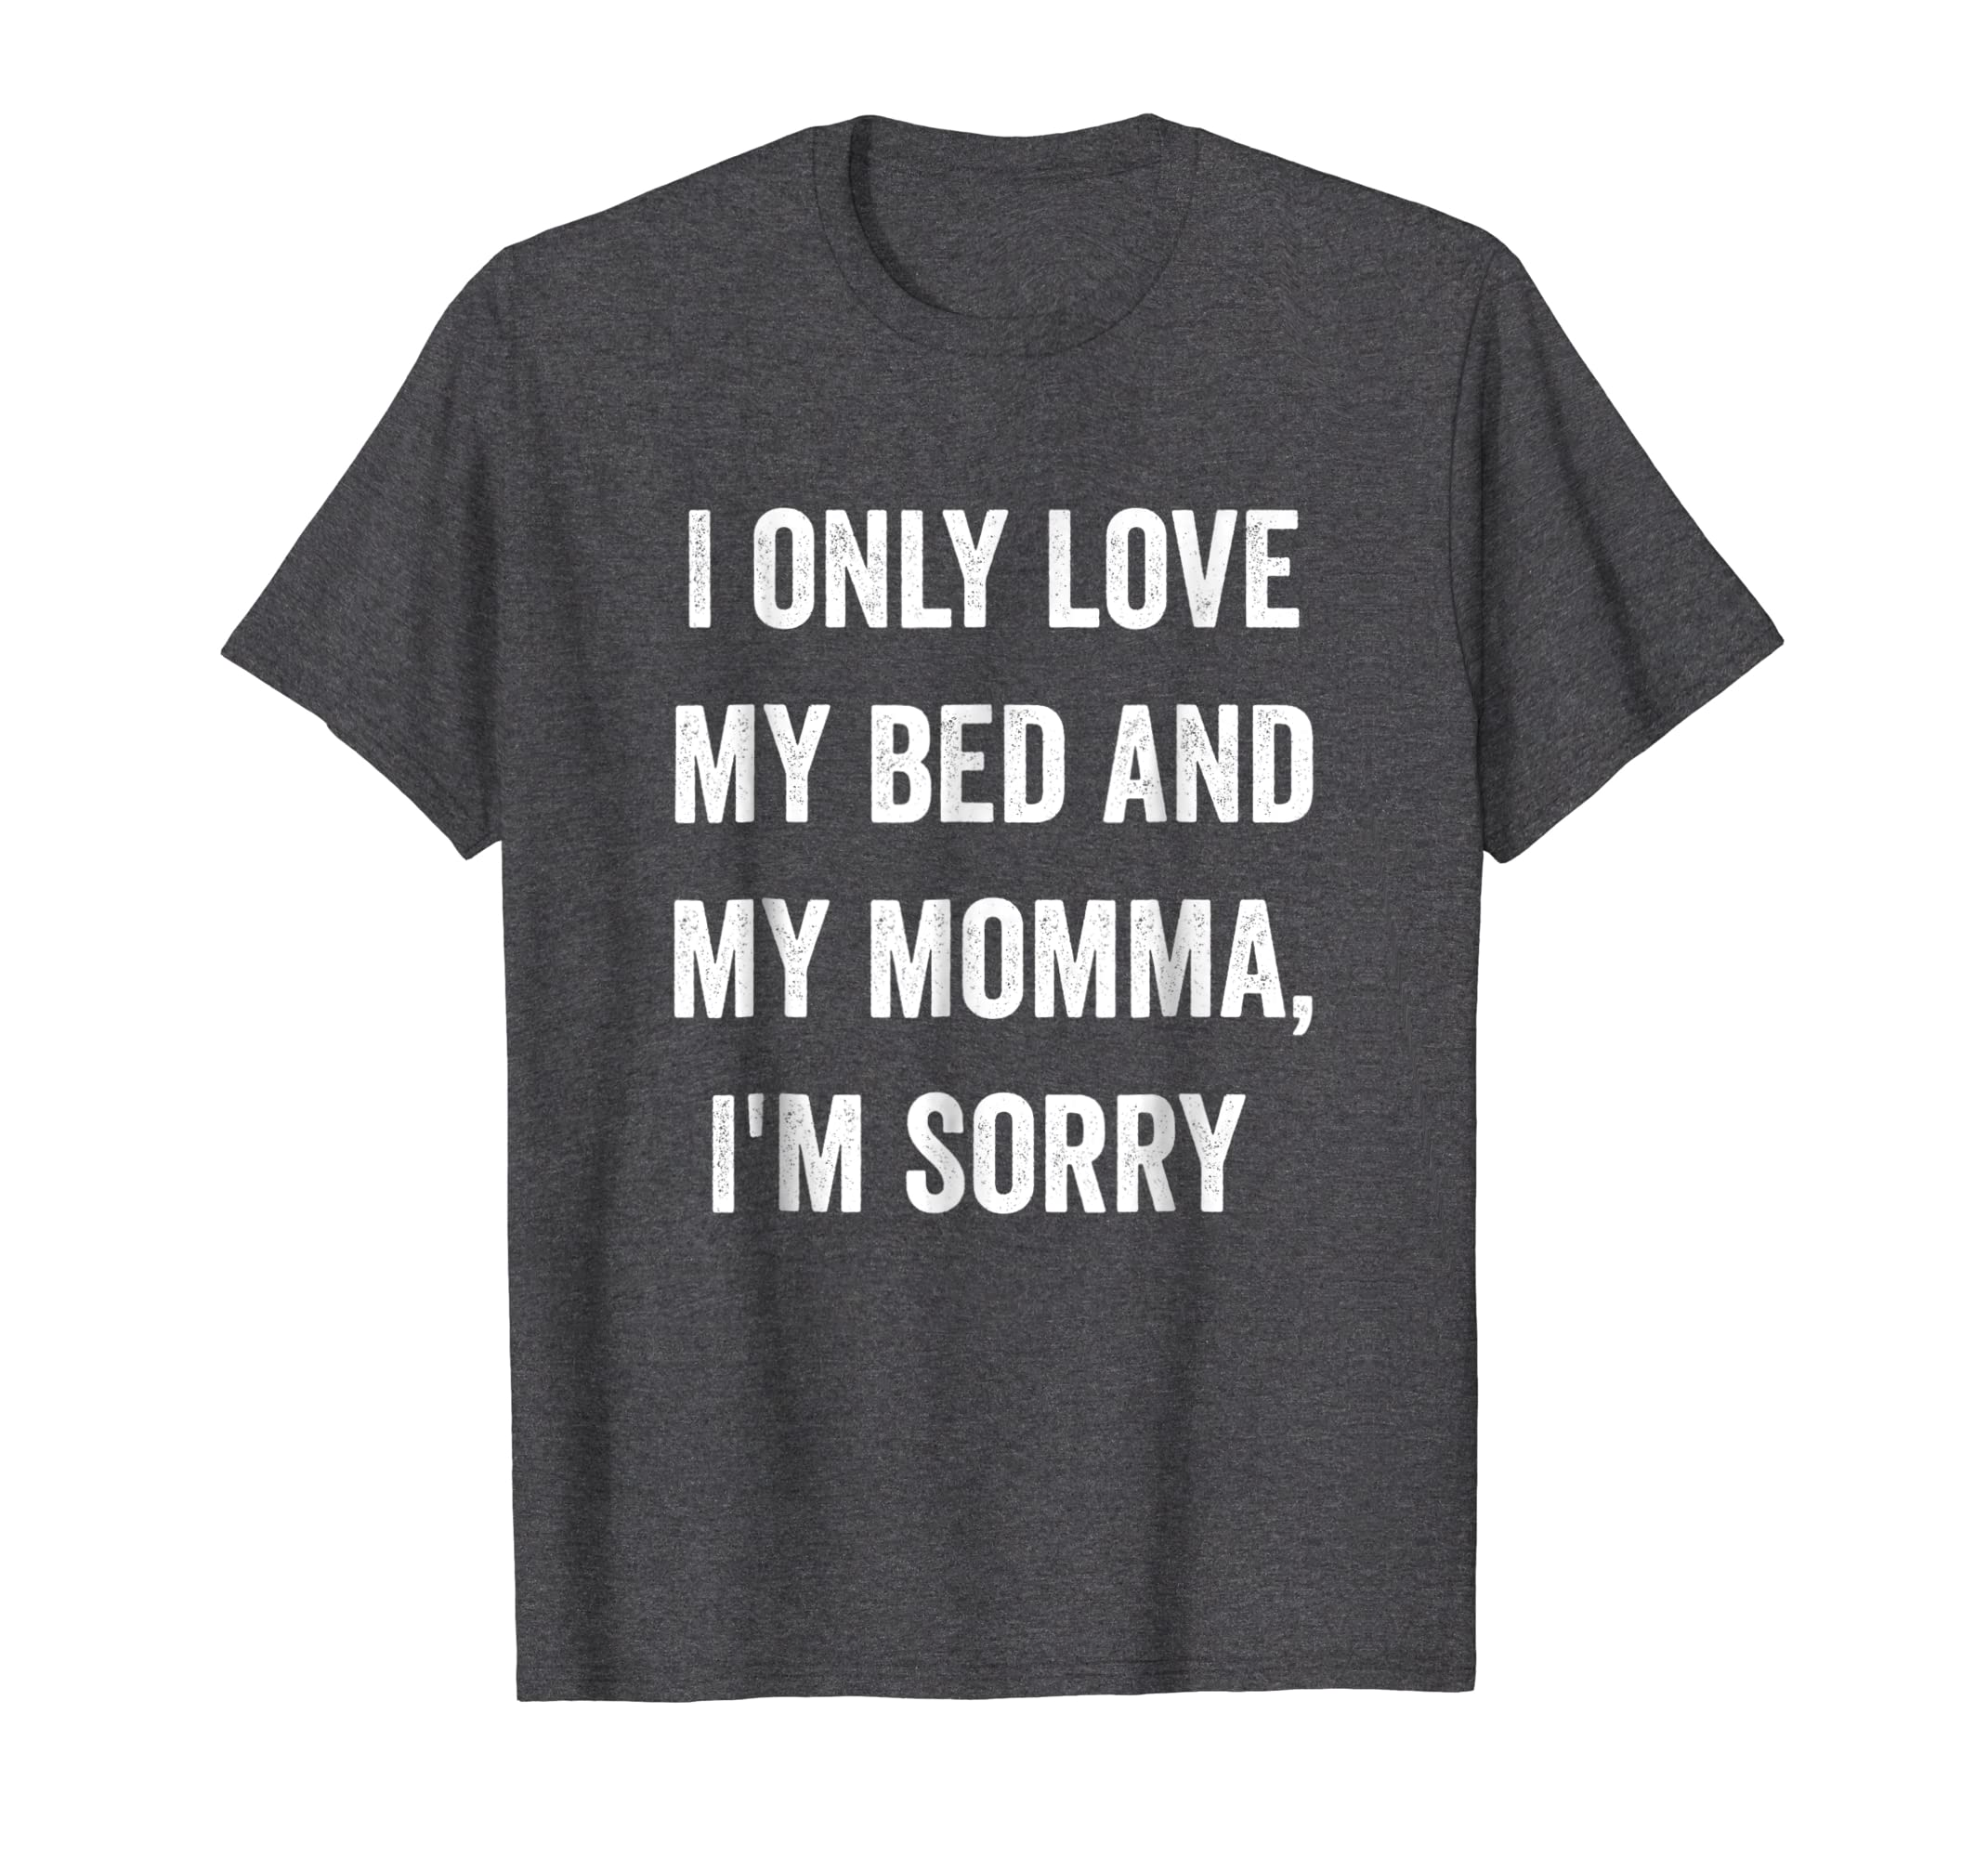 2f80f78601 Amazon.com: I Only Love My Bed And My Momma Shirt: Clothing